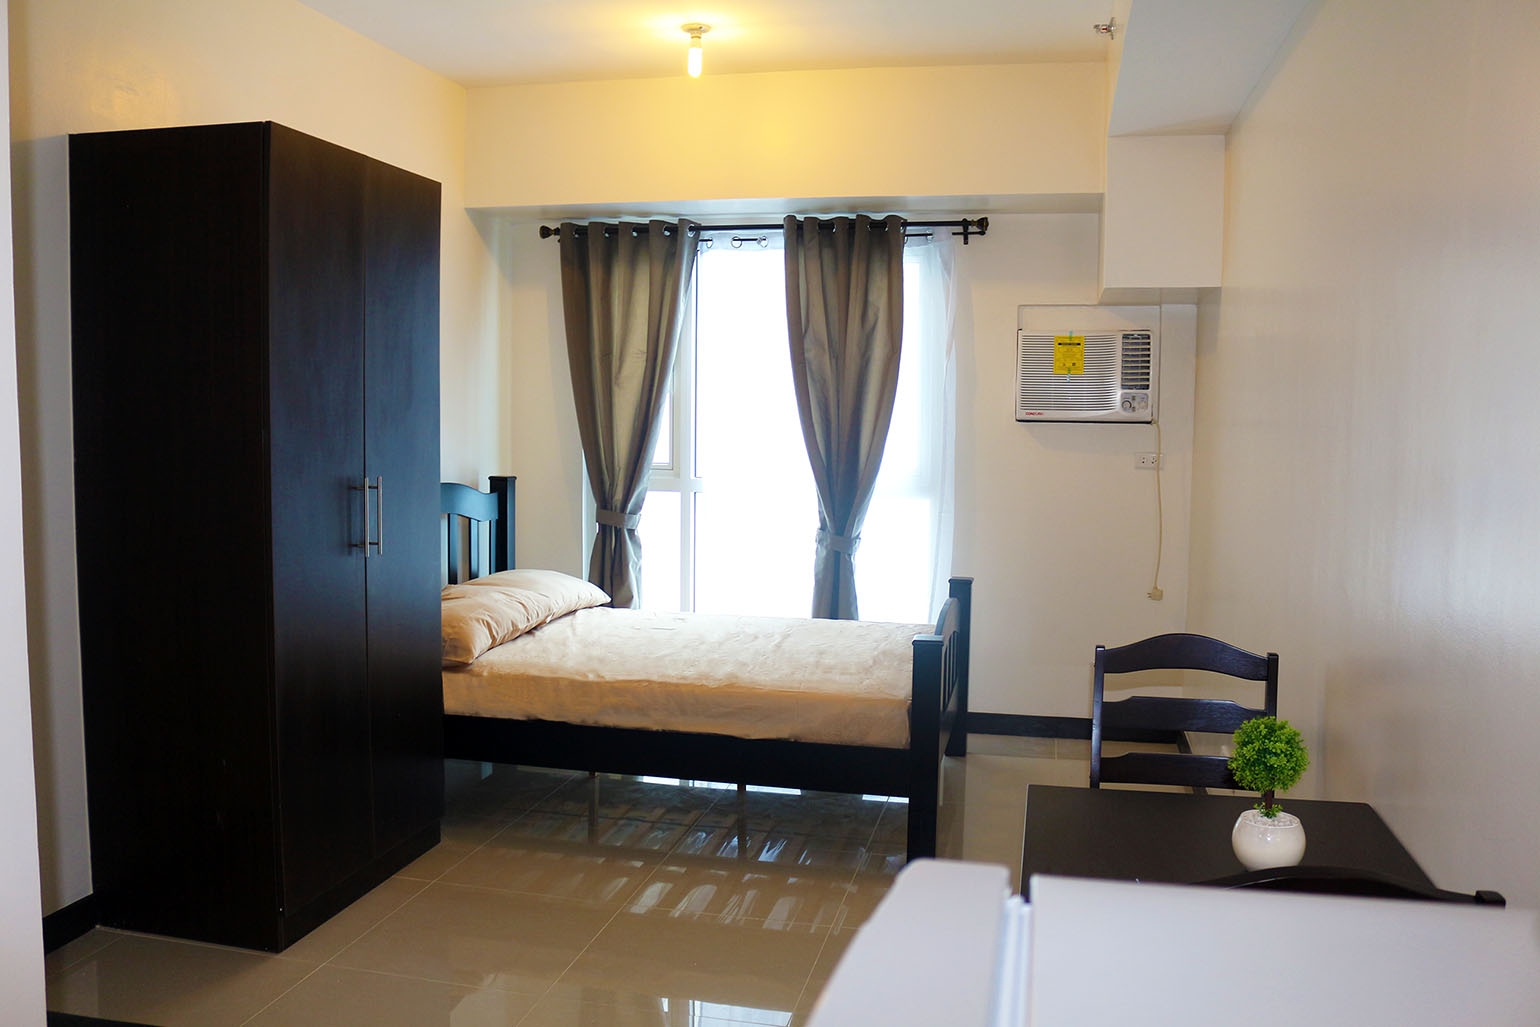 Affordable studio type for rent in mandaluyong axis Studio type decorating ideas